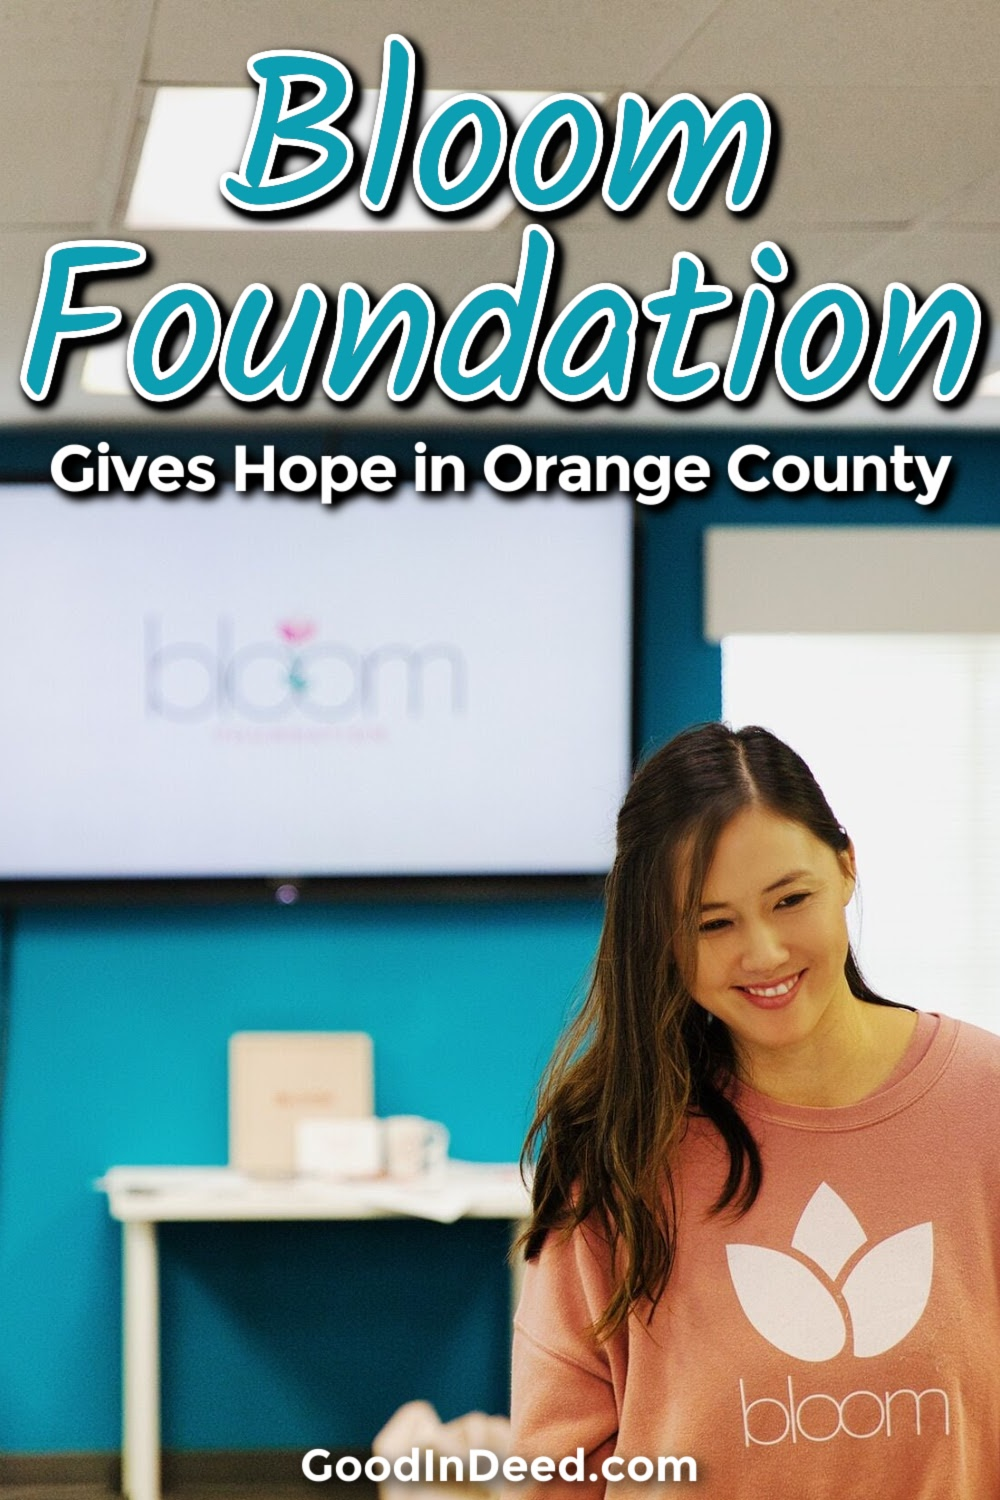 Bloom Foundation gives hope to students dealing with bullying in school so that they can find a better way to handle bullying.